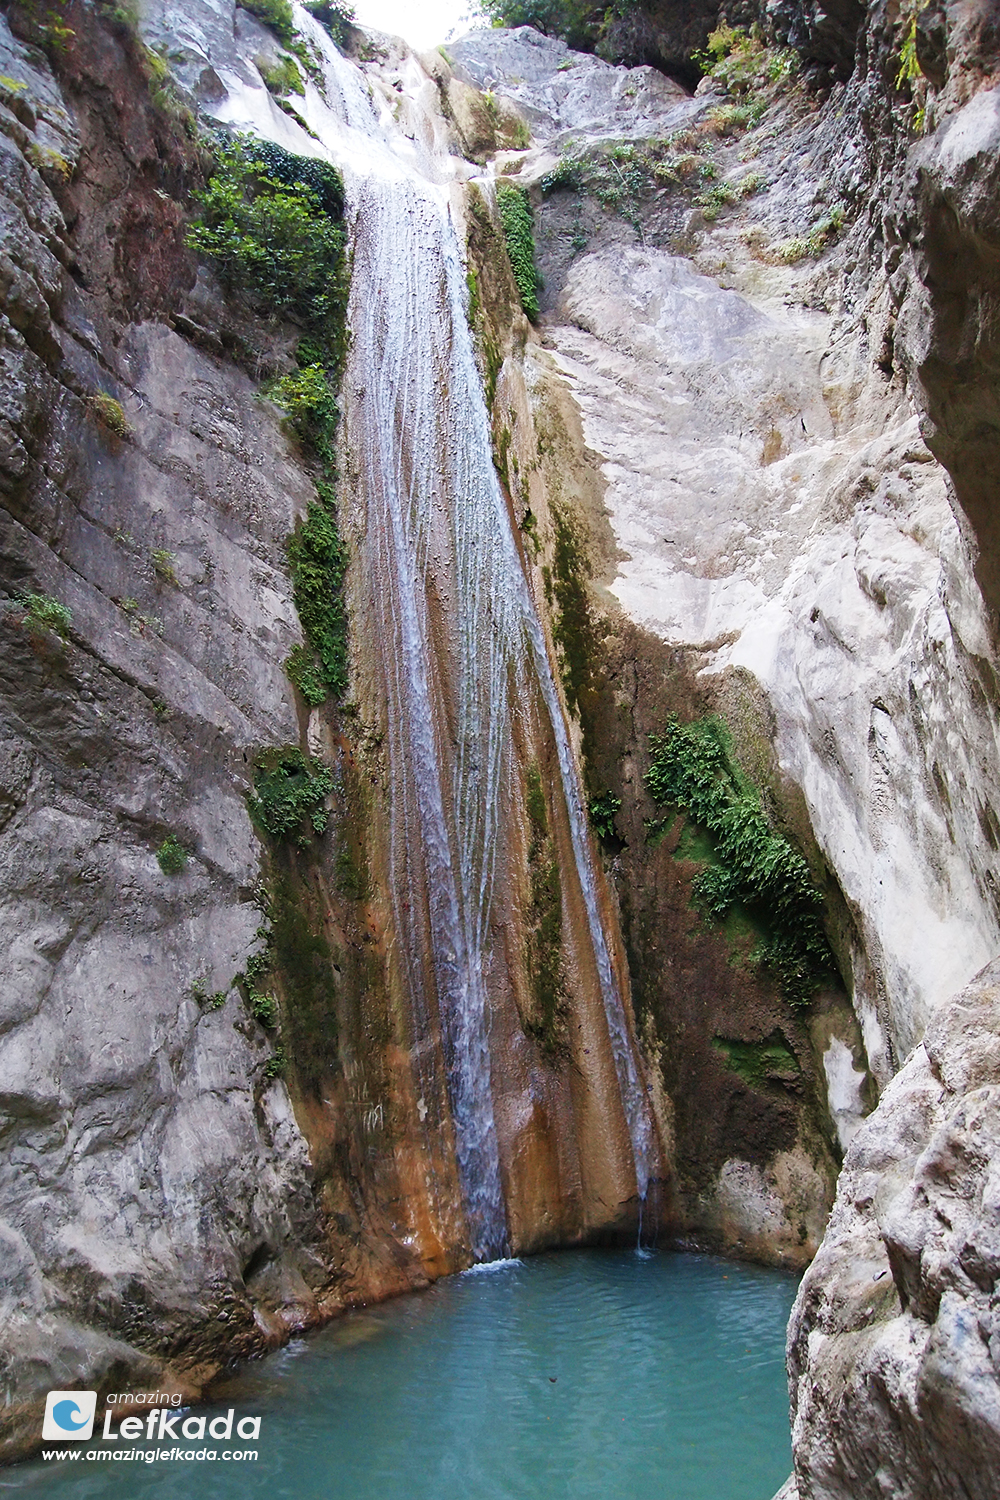 Dimosari waterfall in Lefkada island